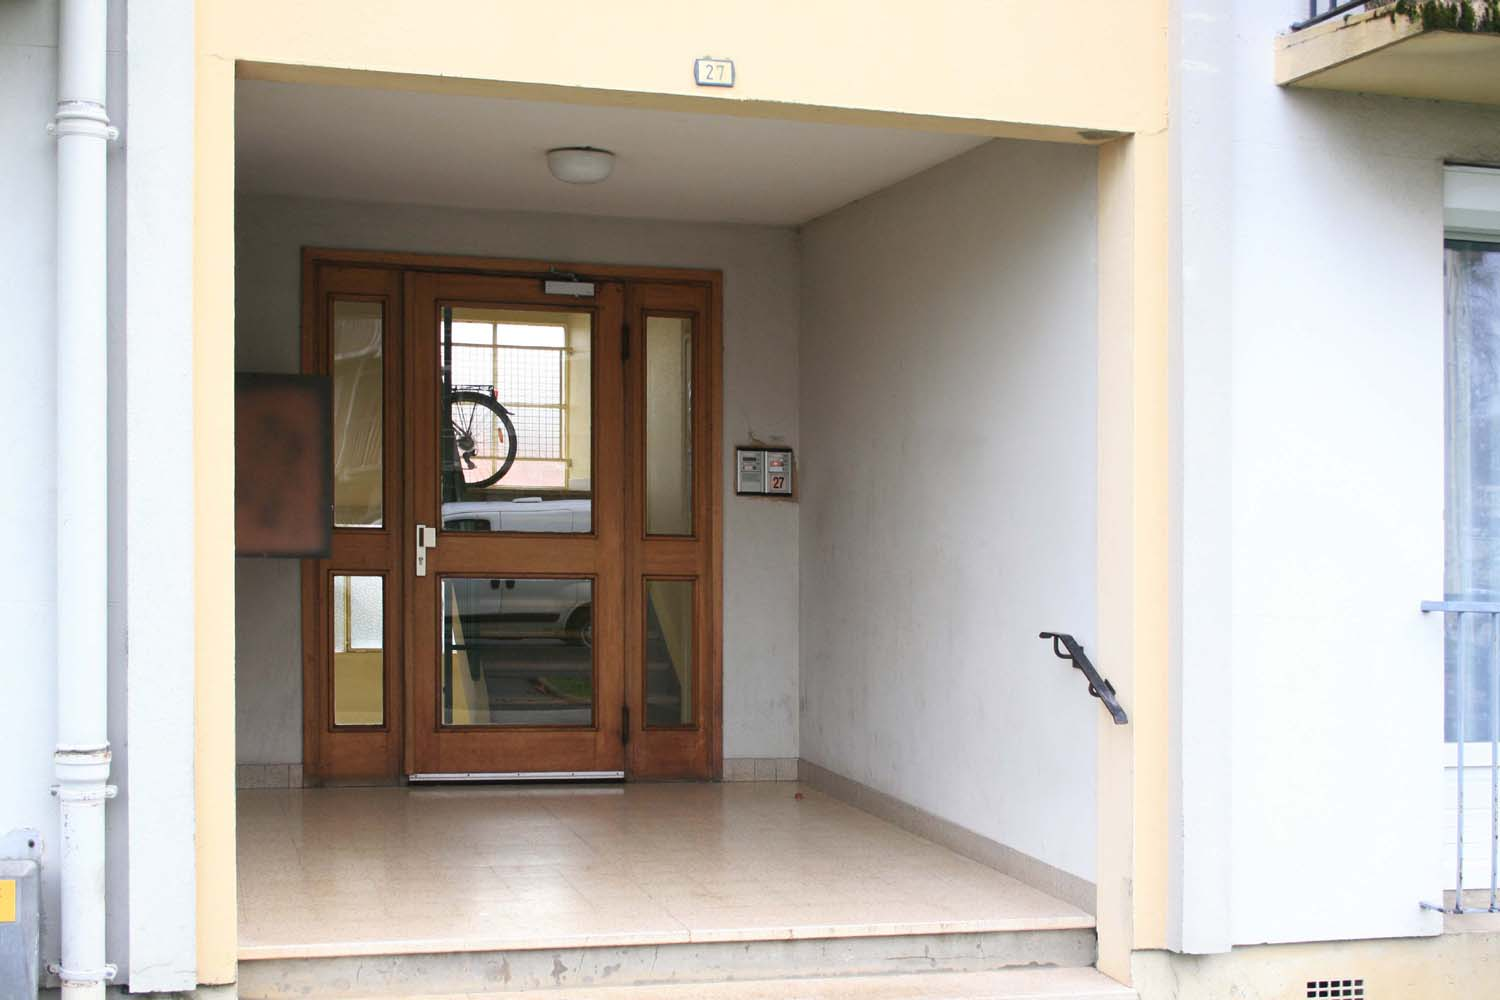 Building entrance with security lock